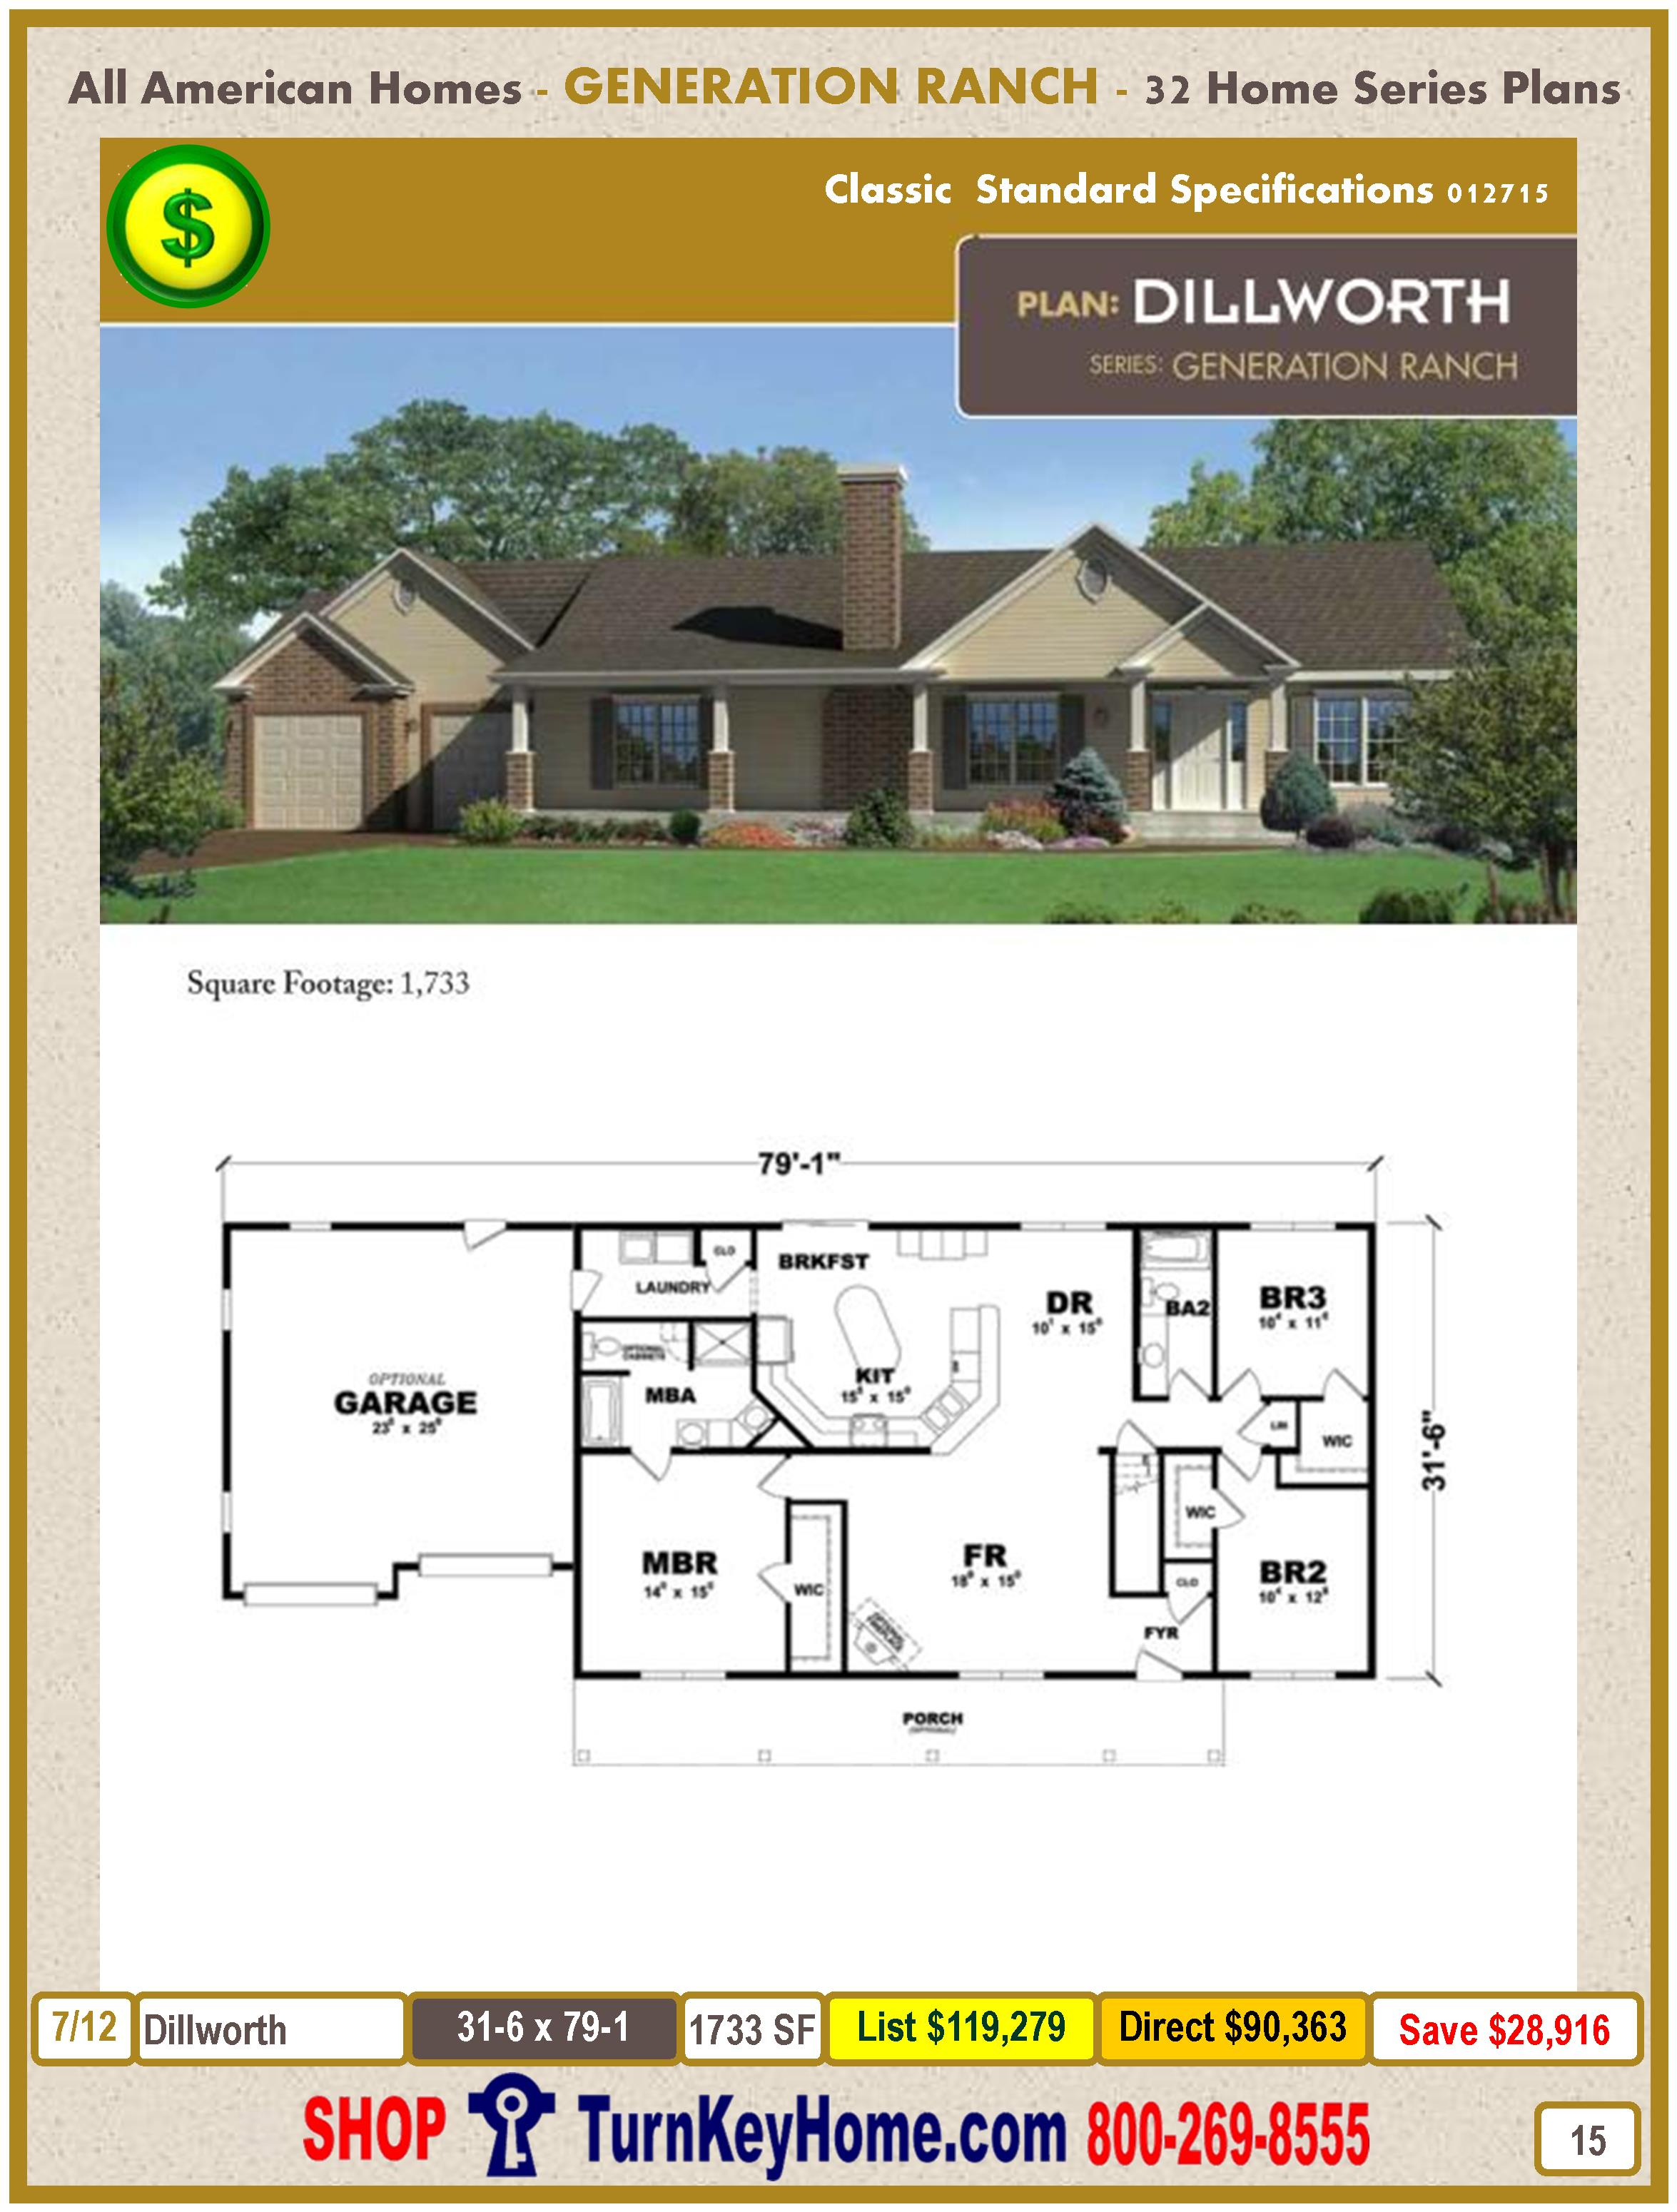 Modular.All.American.Homes.Generation.Ranch.Home.Series.Catalog.Page.15.Dillworth.Direct.Price.021415